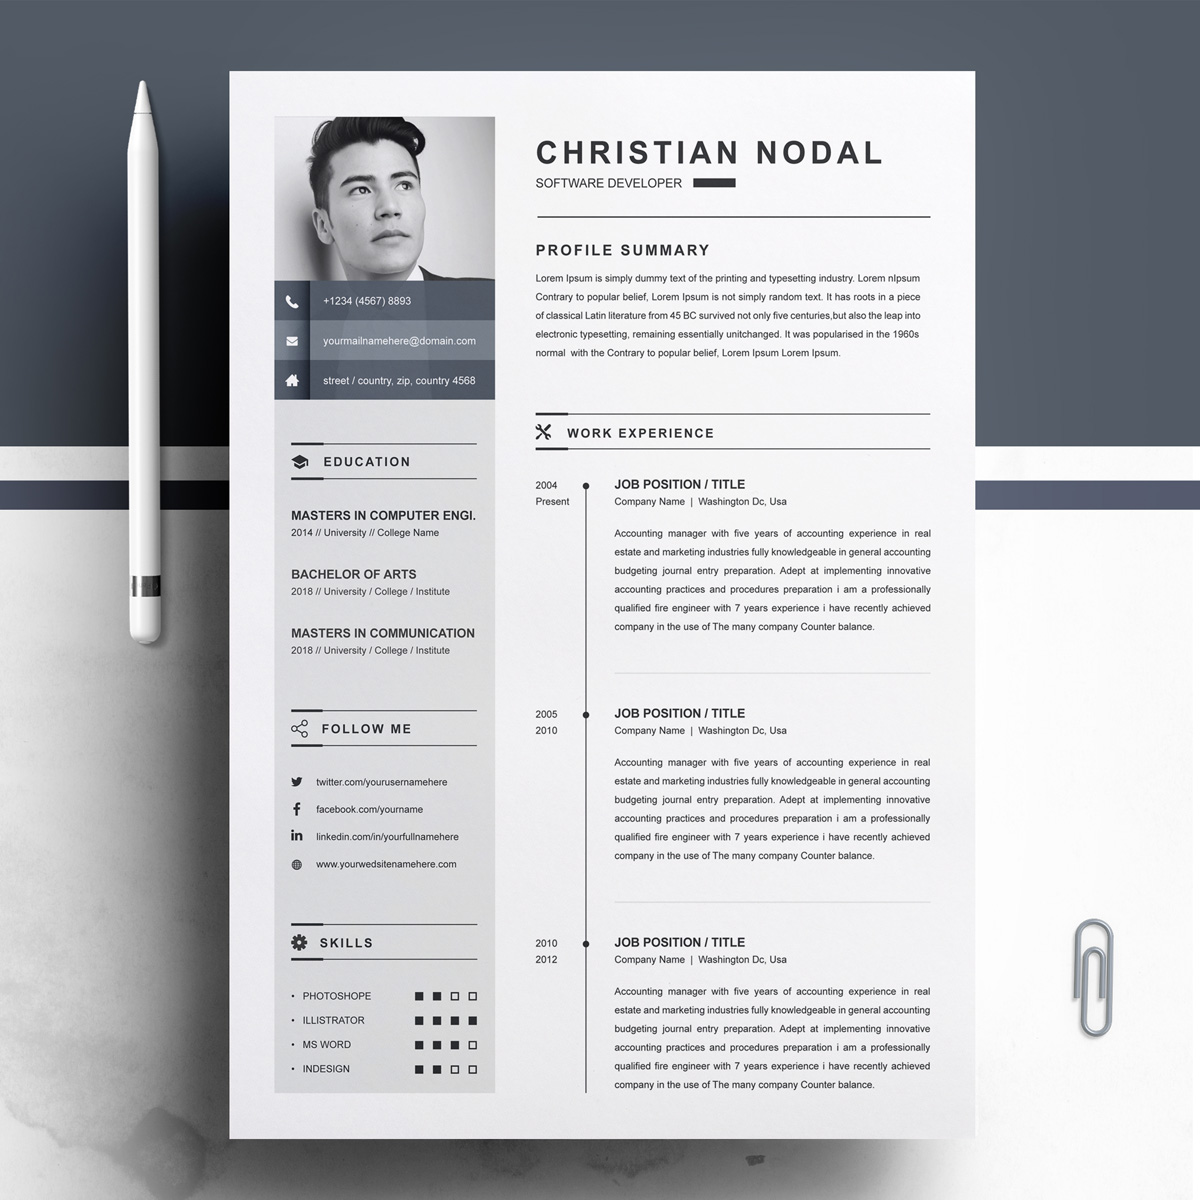 https://s3u.tmimgcdn.com/1860567-1553349815186_01_Modern-Resume-Template---CV-Template-Cover-Letter-Professional-Teacher-Resume_Main-Thumbnail-Image.jpg